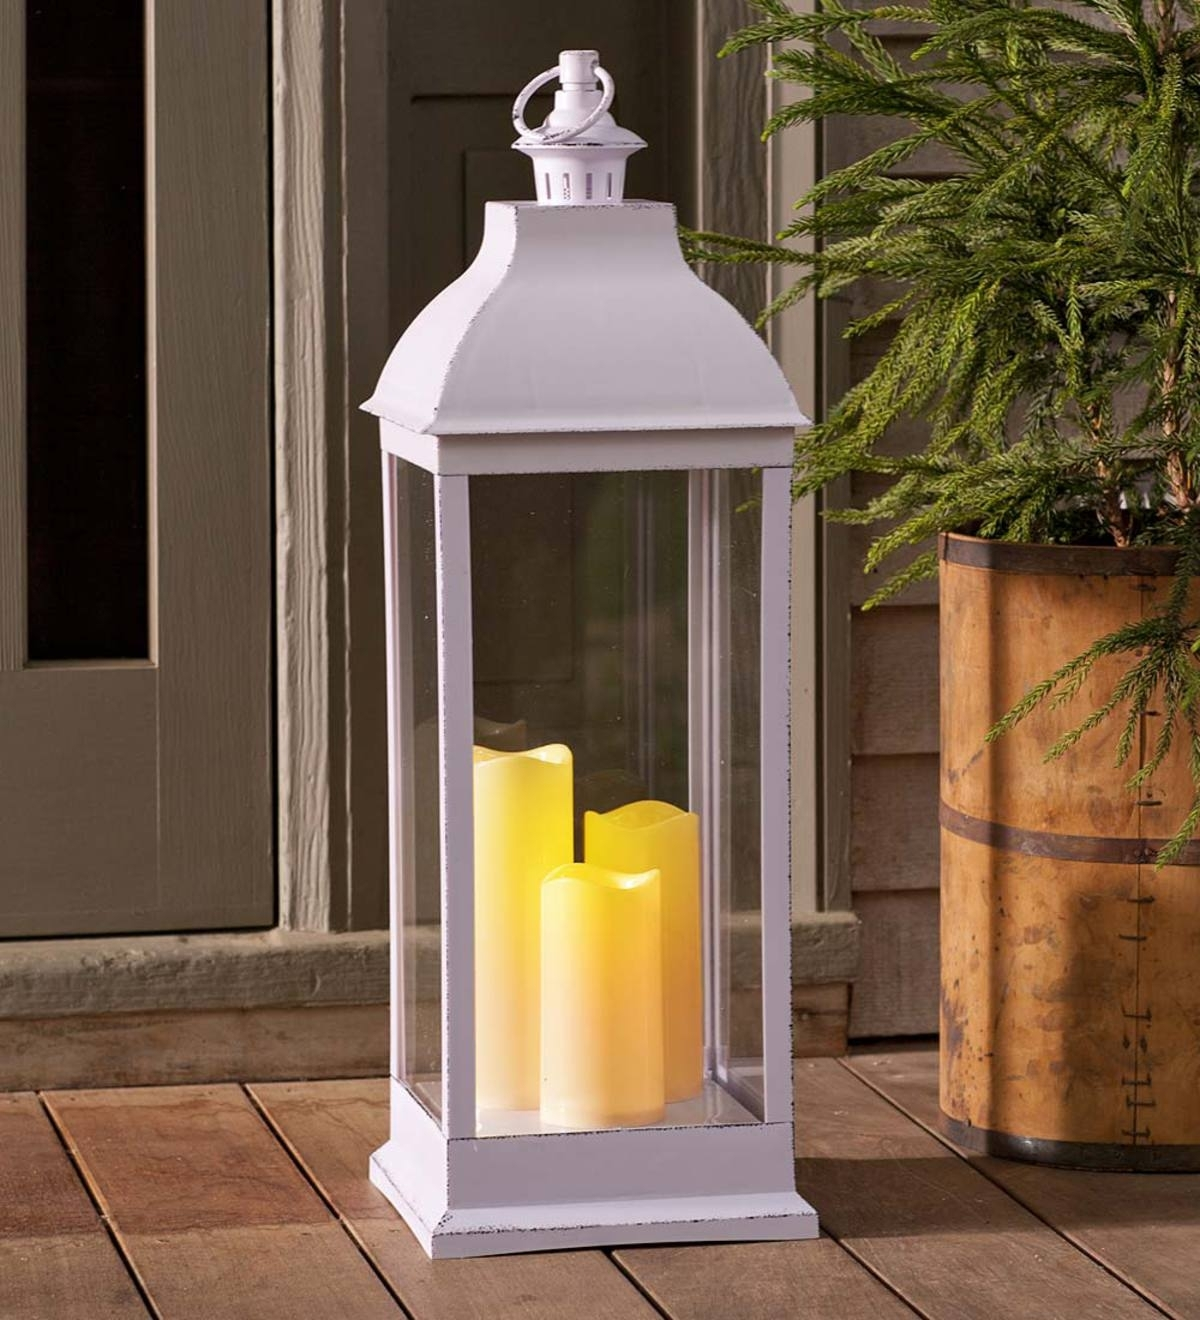 Outdoor Lantern With Led Candles | Plowhearth With Outdoor Lanterns With Led Candles (View 8 of 20)